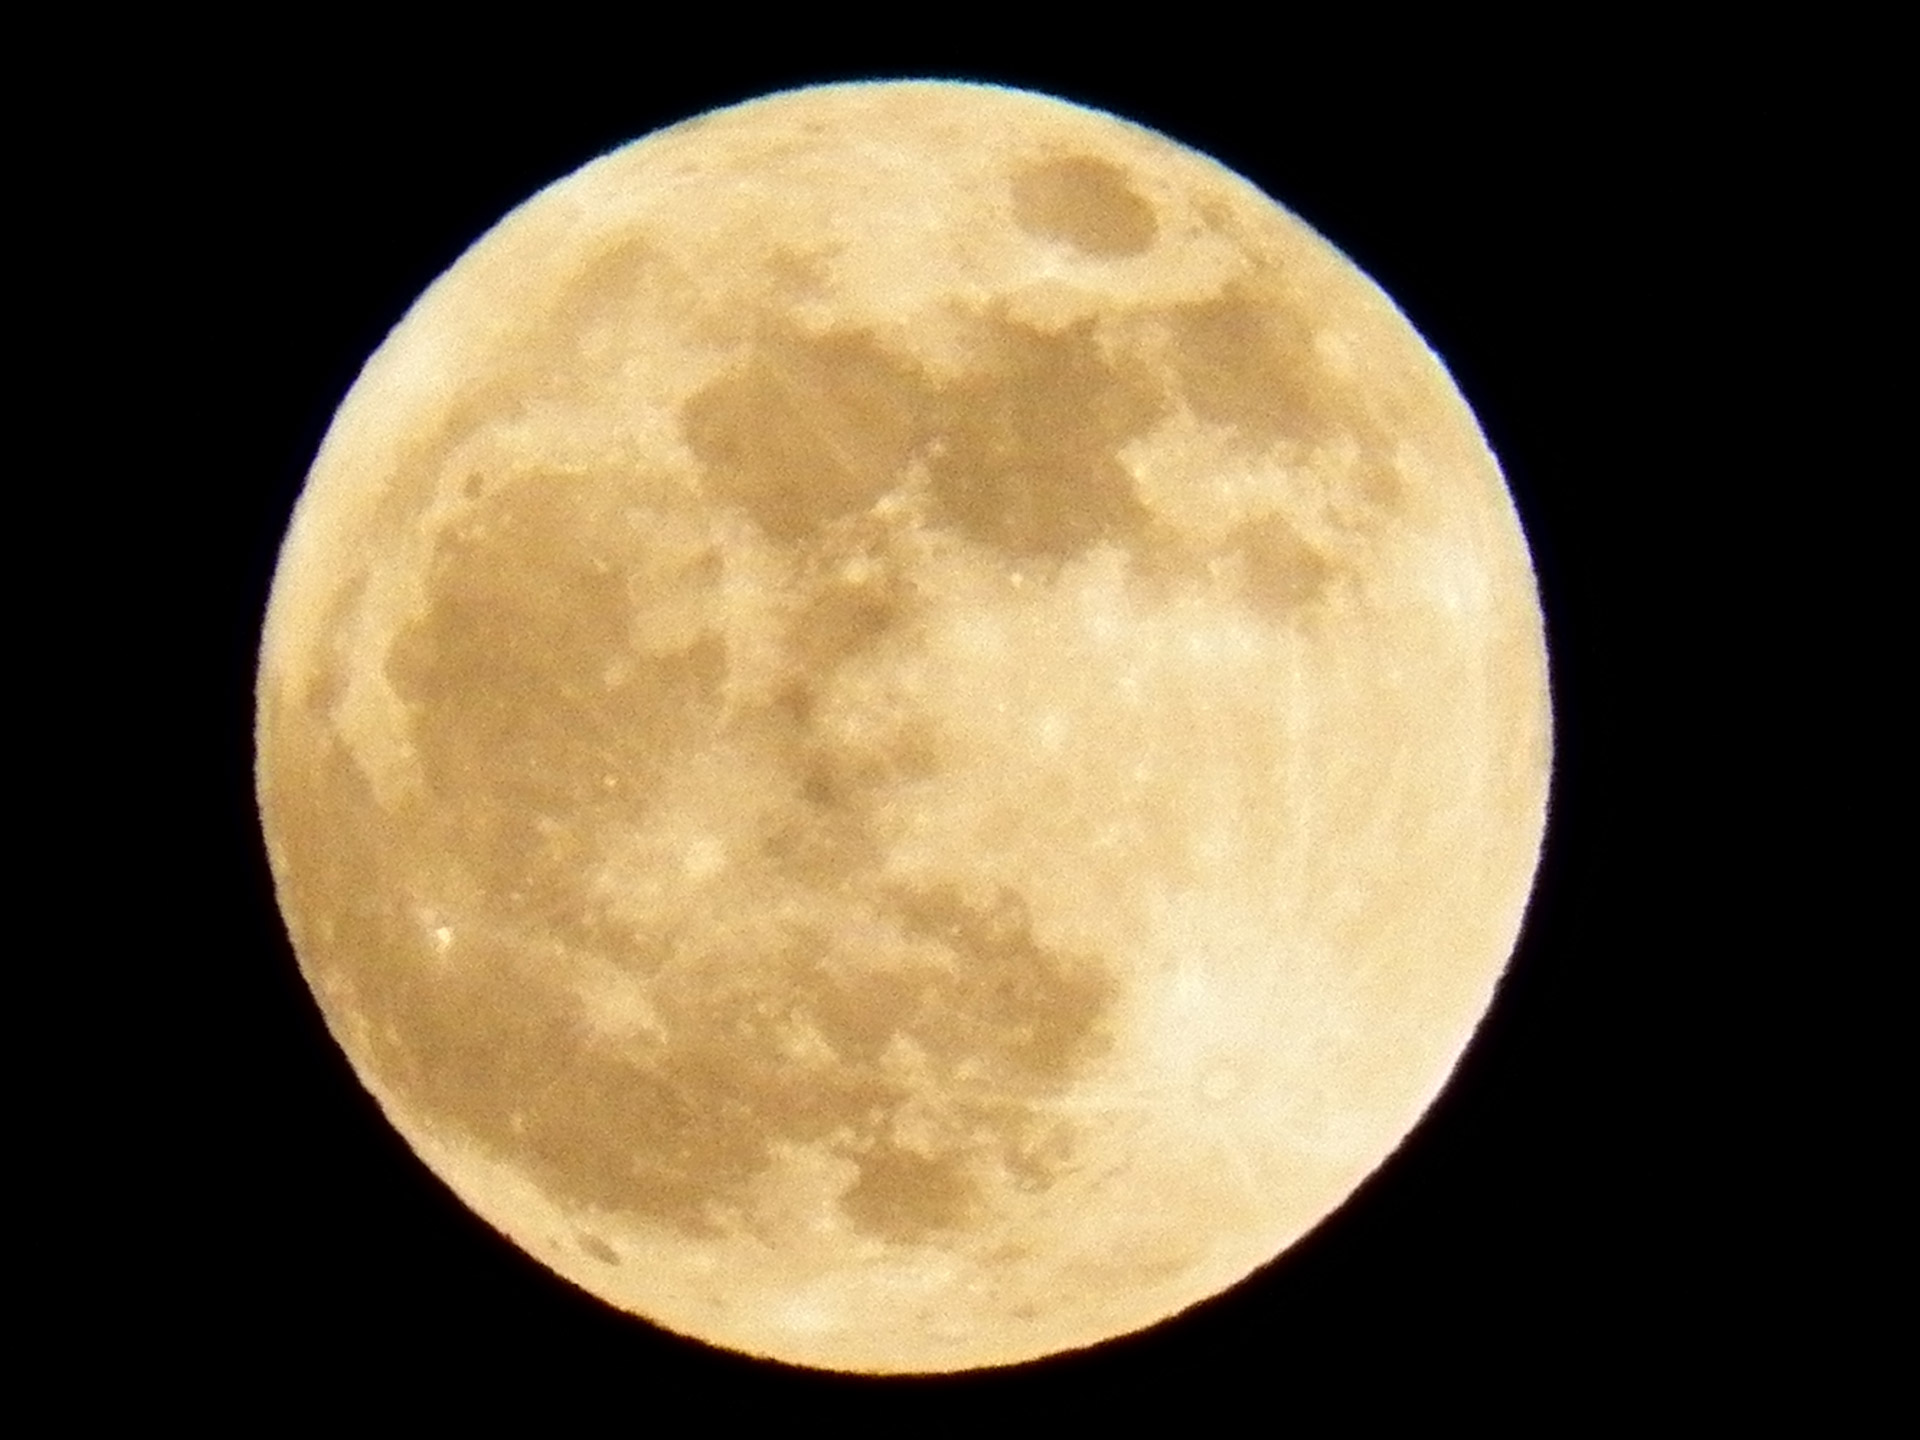 Full Moon Free Stock Photo - Public Domain Pictures